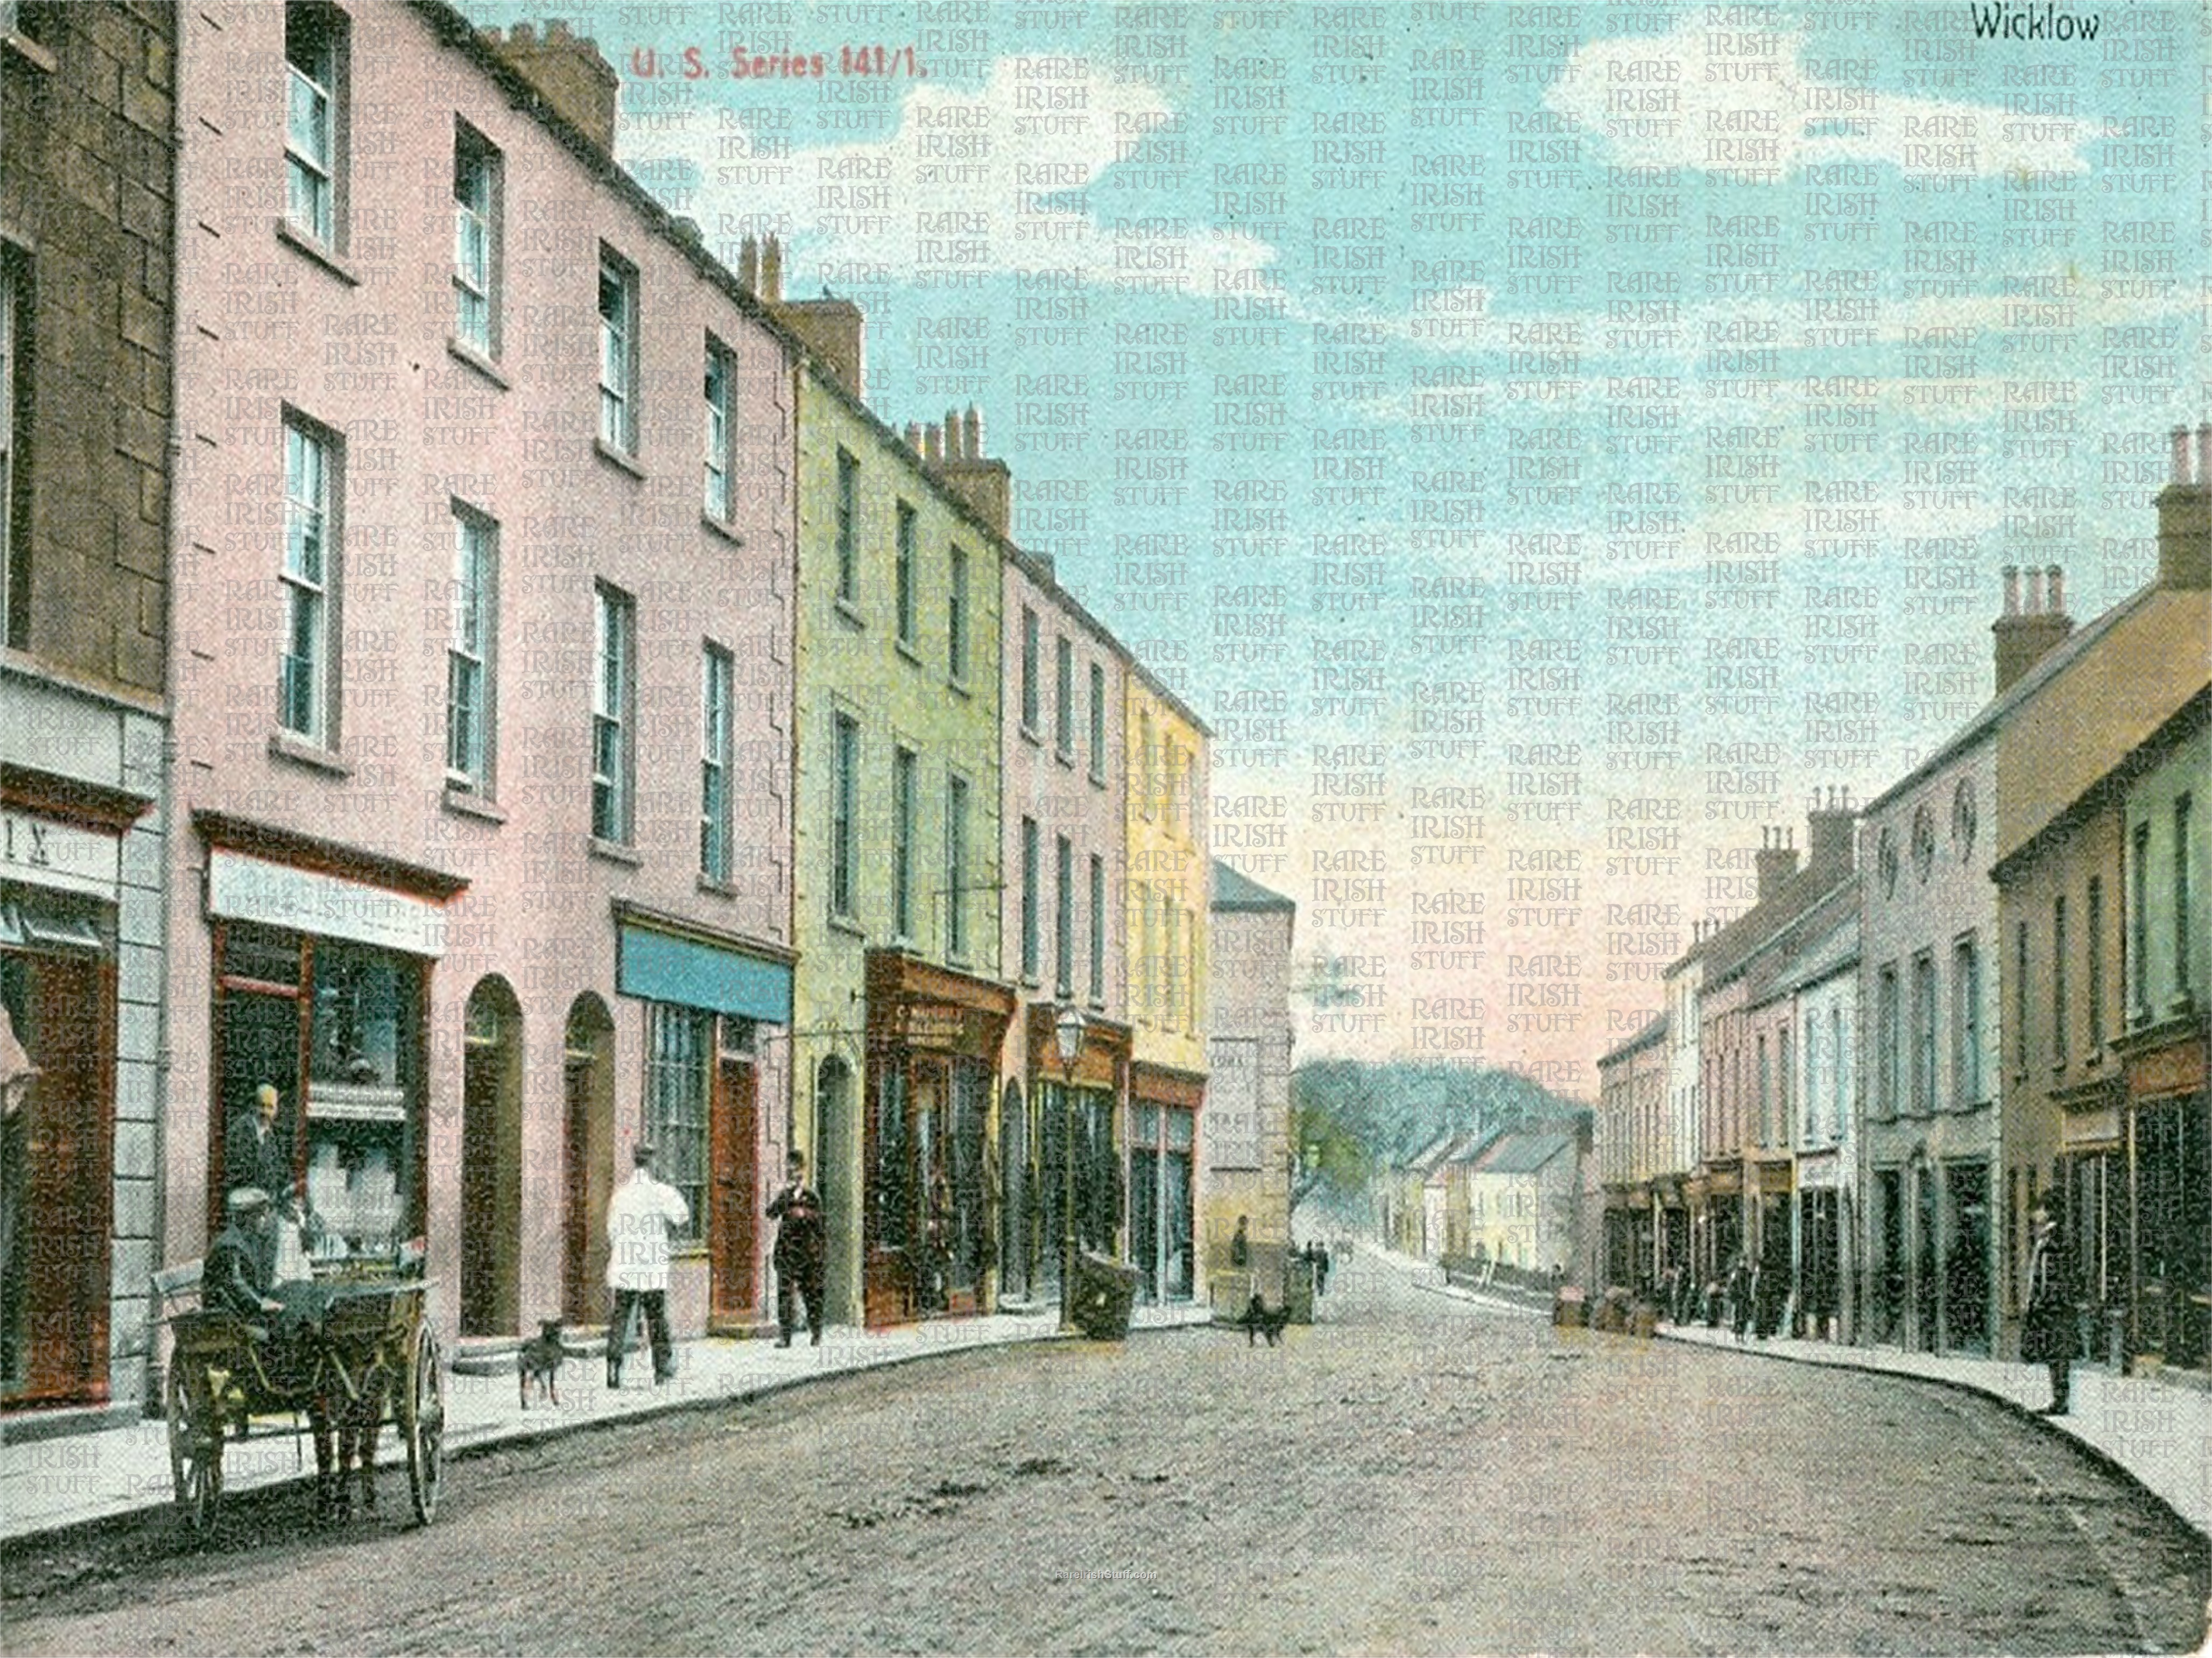 Main  St   Wicklow  Town   Co.  Wicklow 1895  Thumbnail0